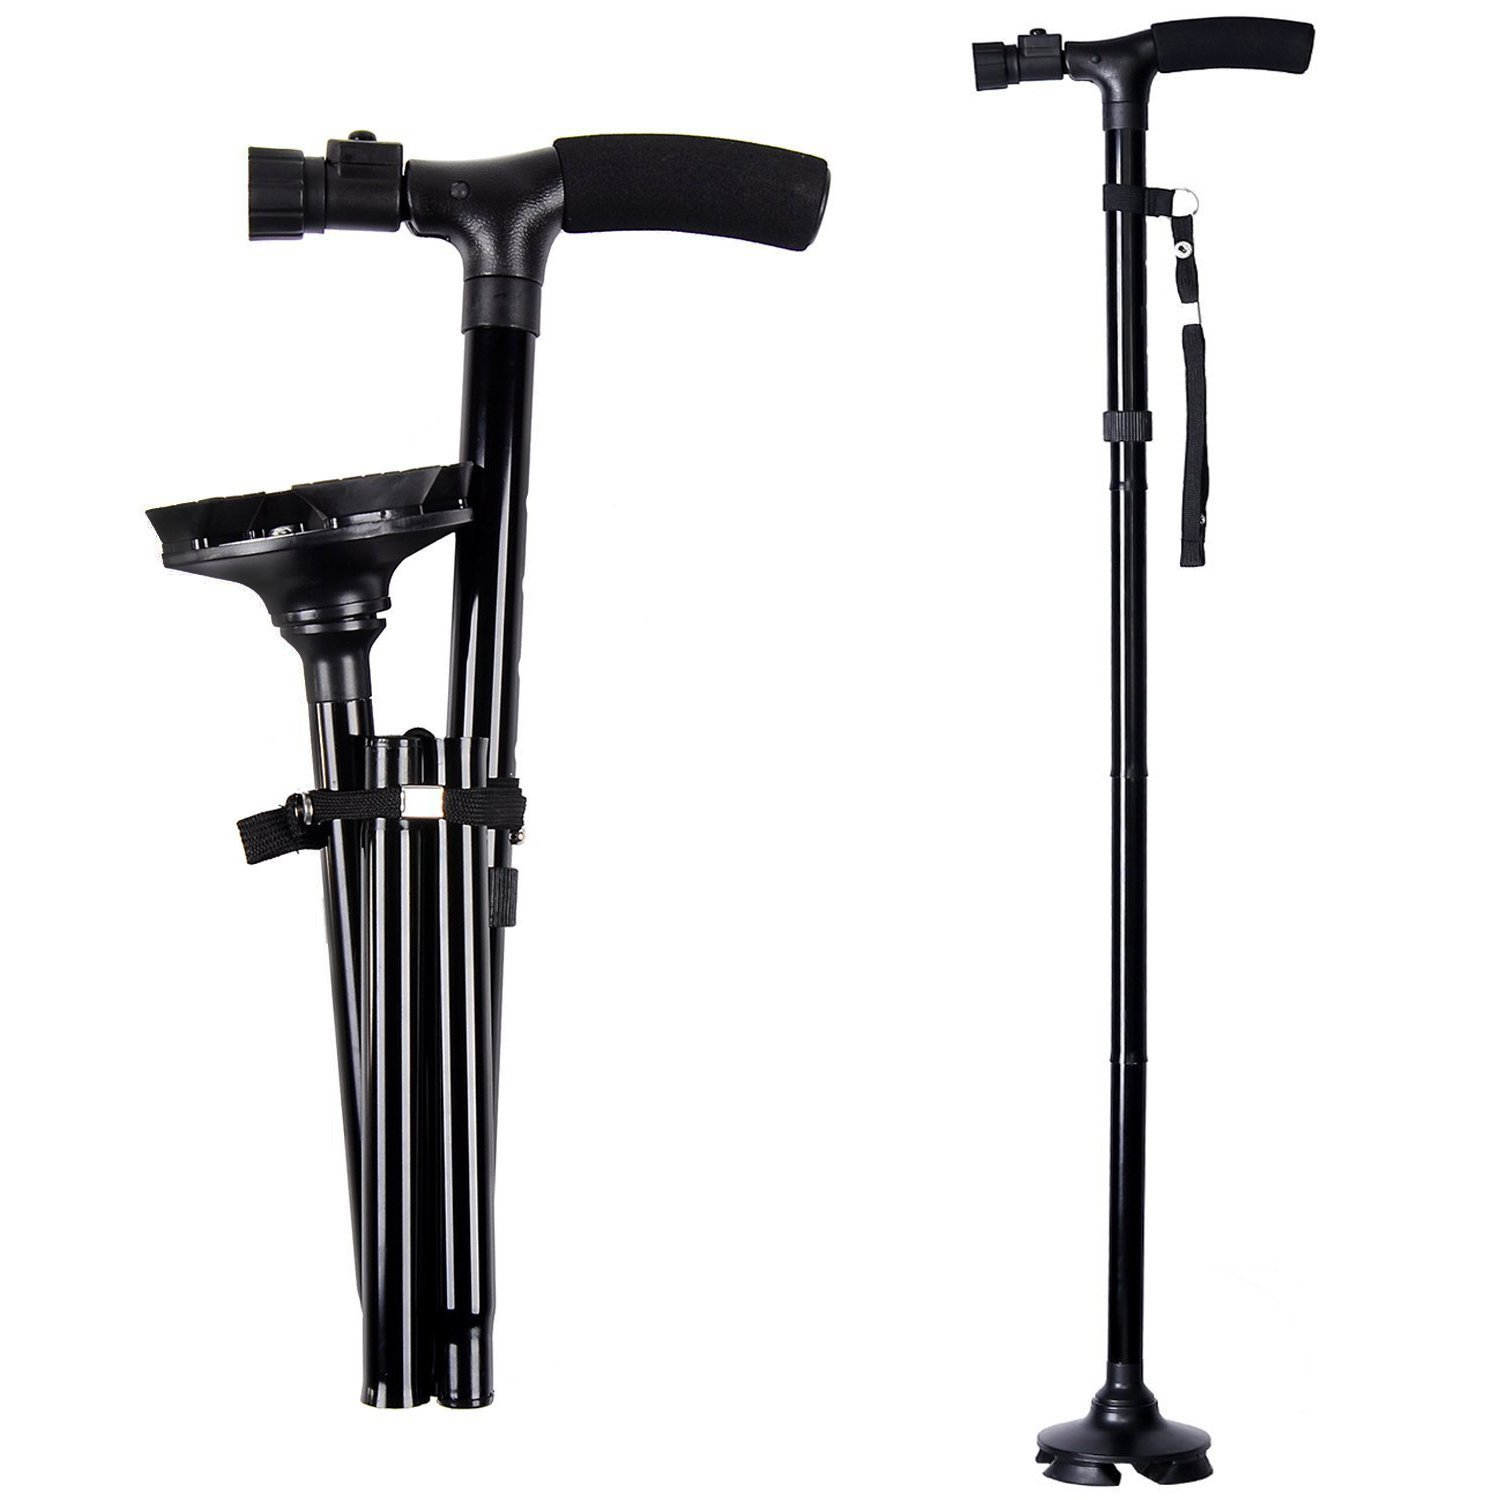 Ohuhu Folding Walking Cane with LED Light, Adjustable Walking Stick with Carrying Bag for Fathers Mothers Gifts